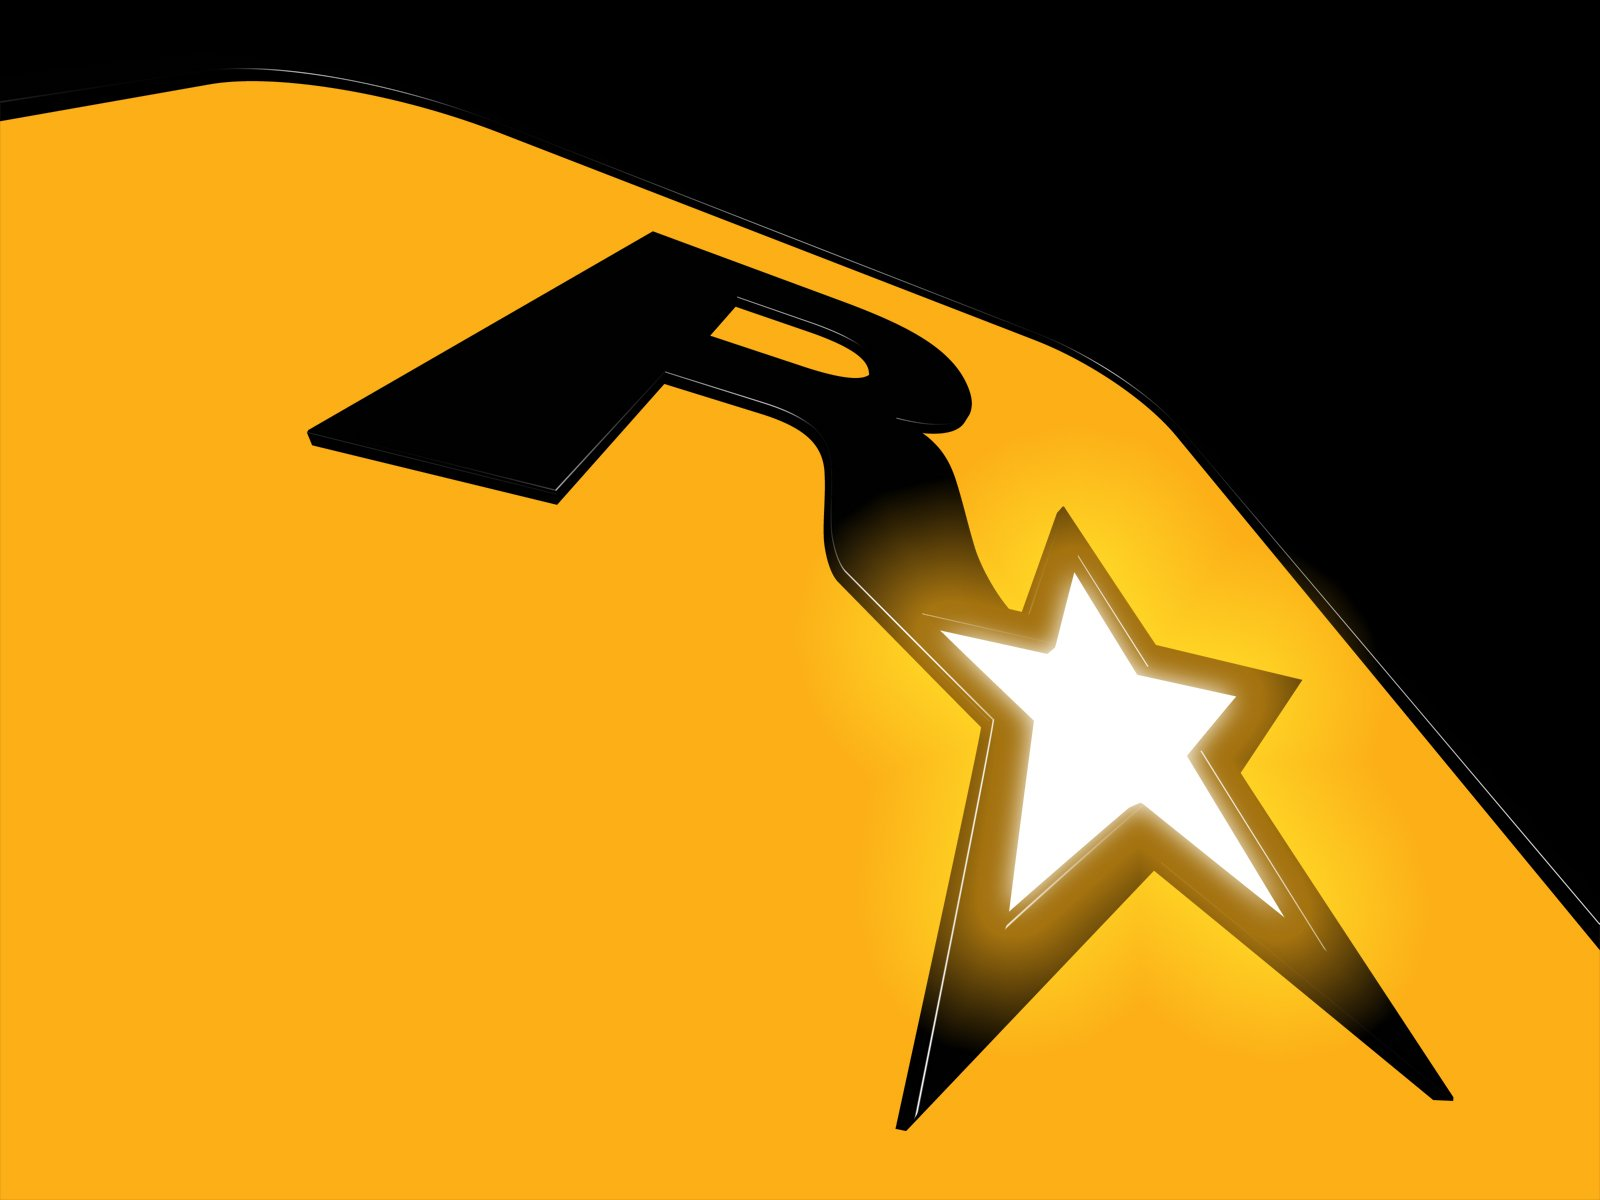 rockstar games essay Game love: essays on play and affection max payne ii (rockstar games attachments to games and gaming as fans in the essay by emily.